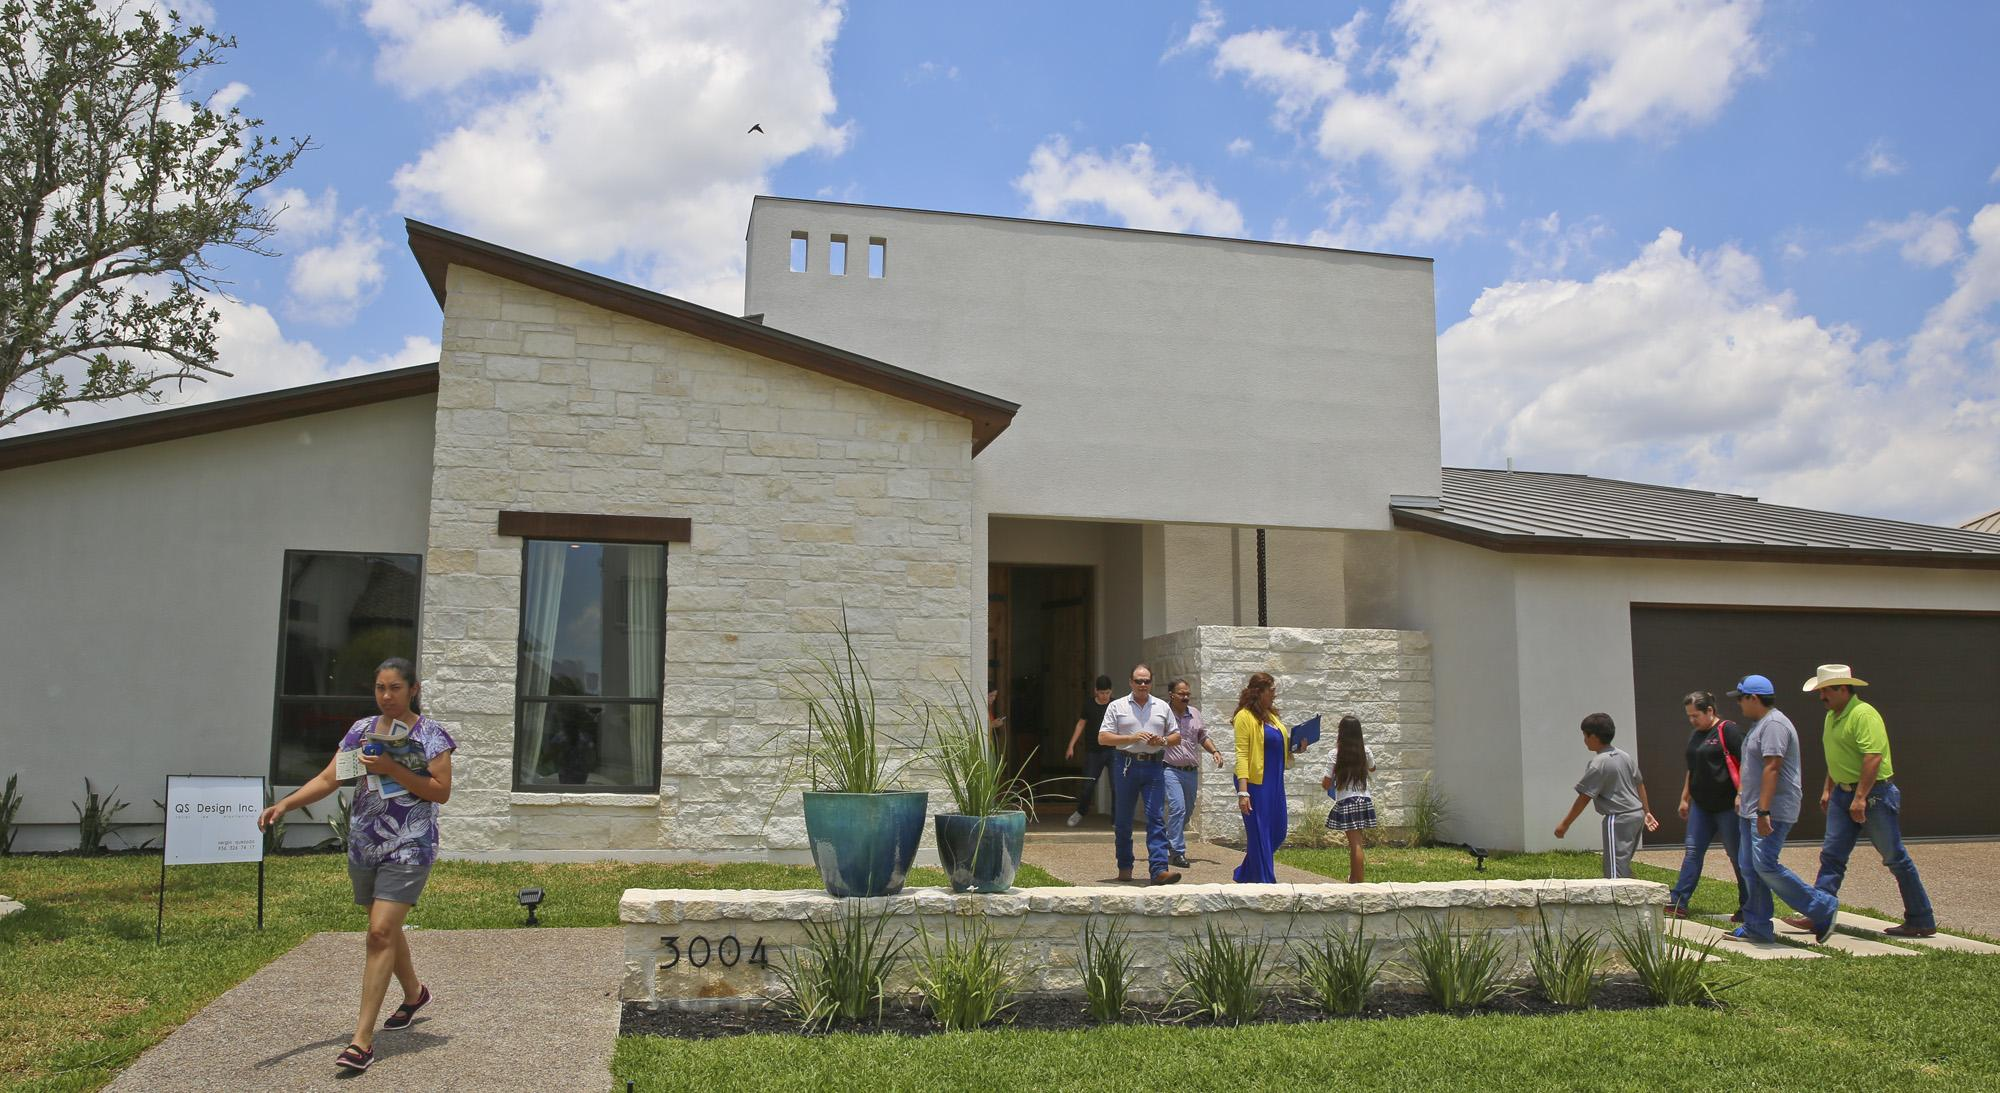 Property values sharply rising in Webb County, appraisal district says